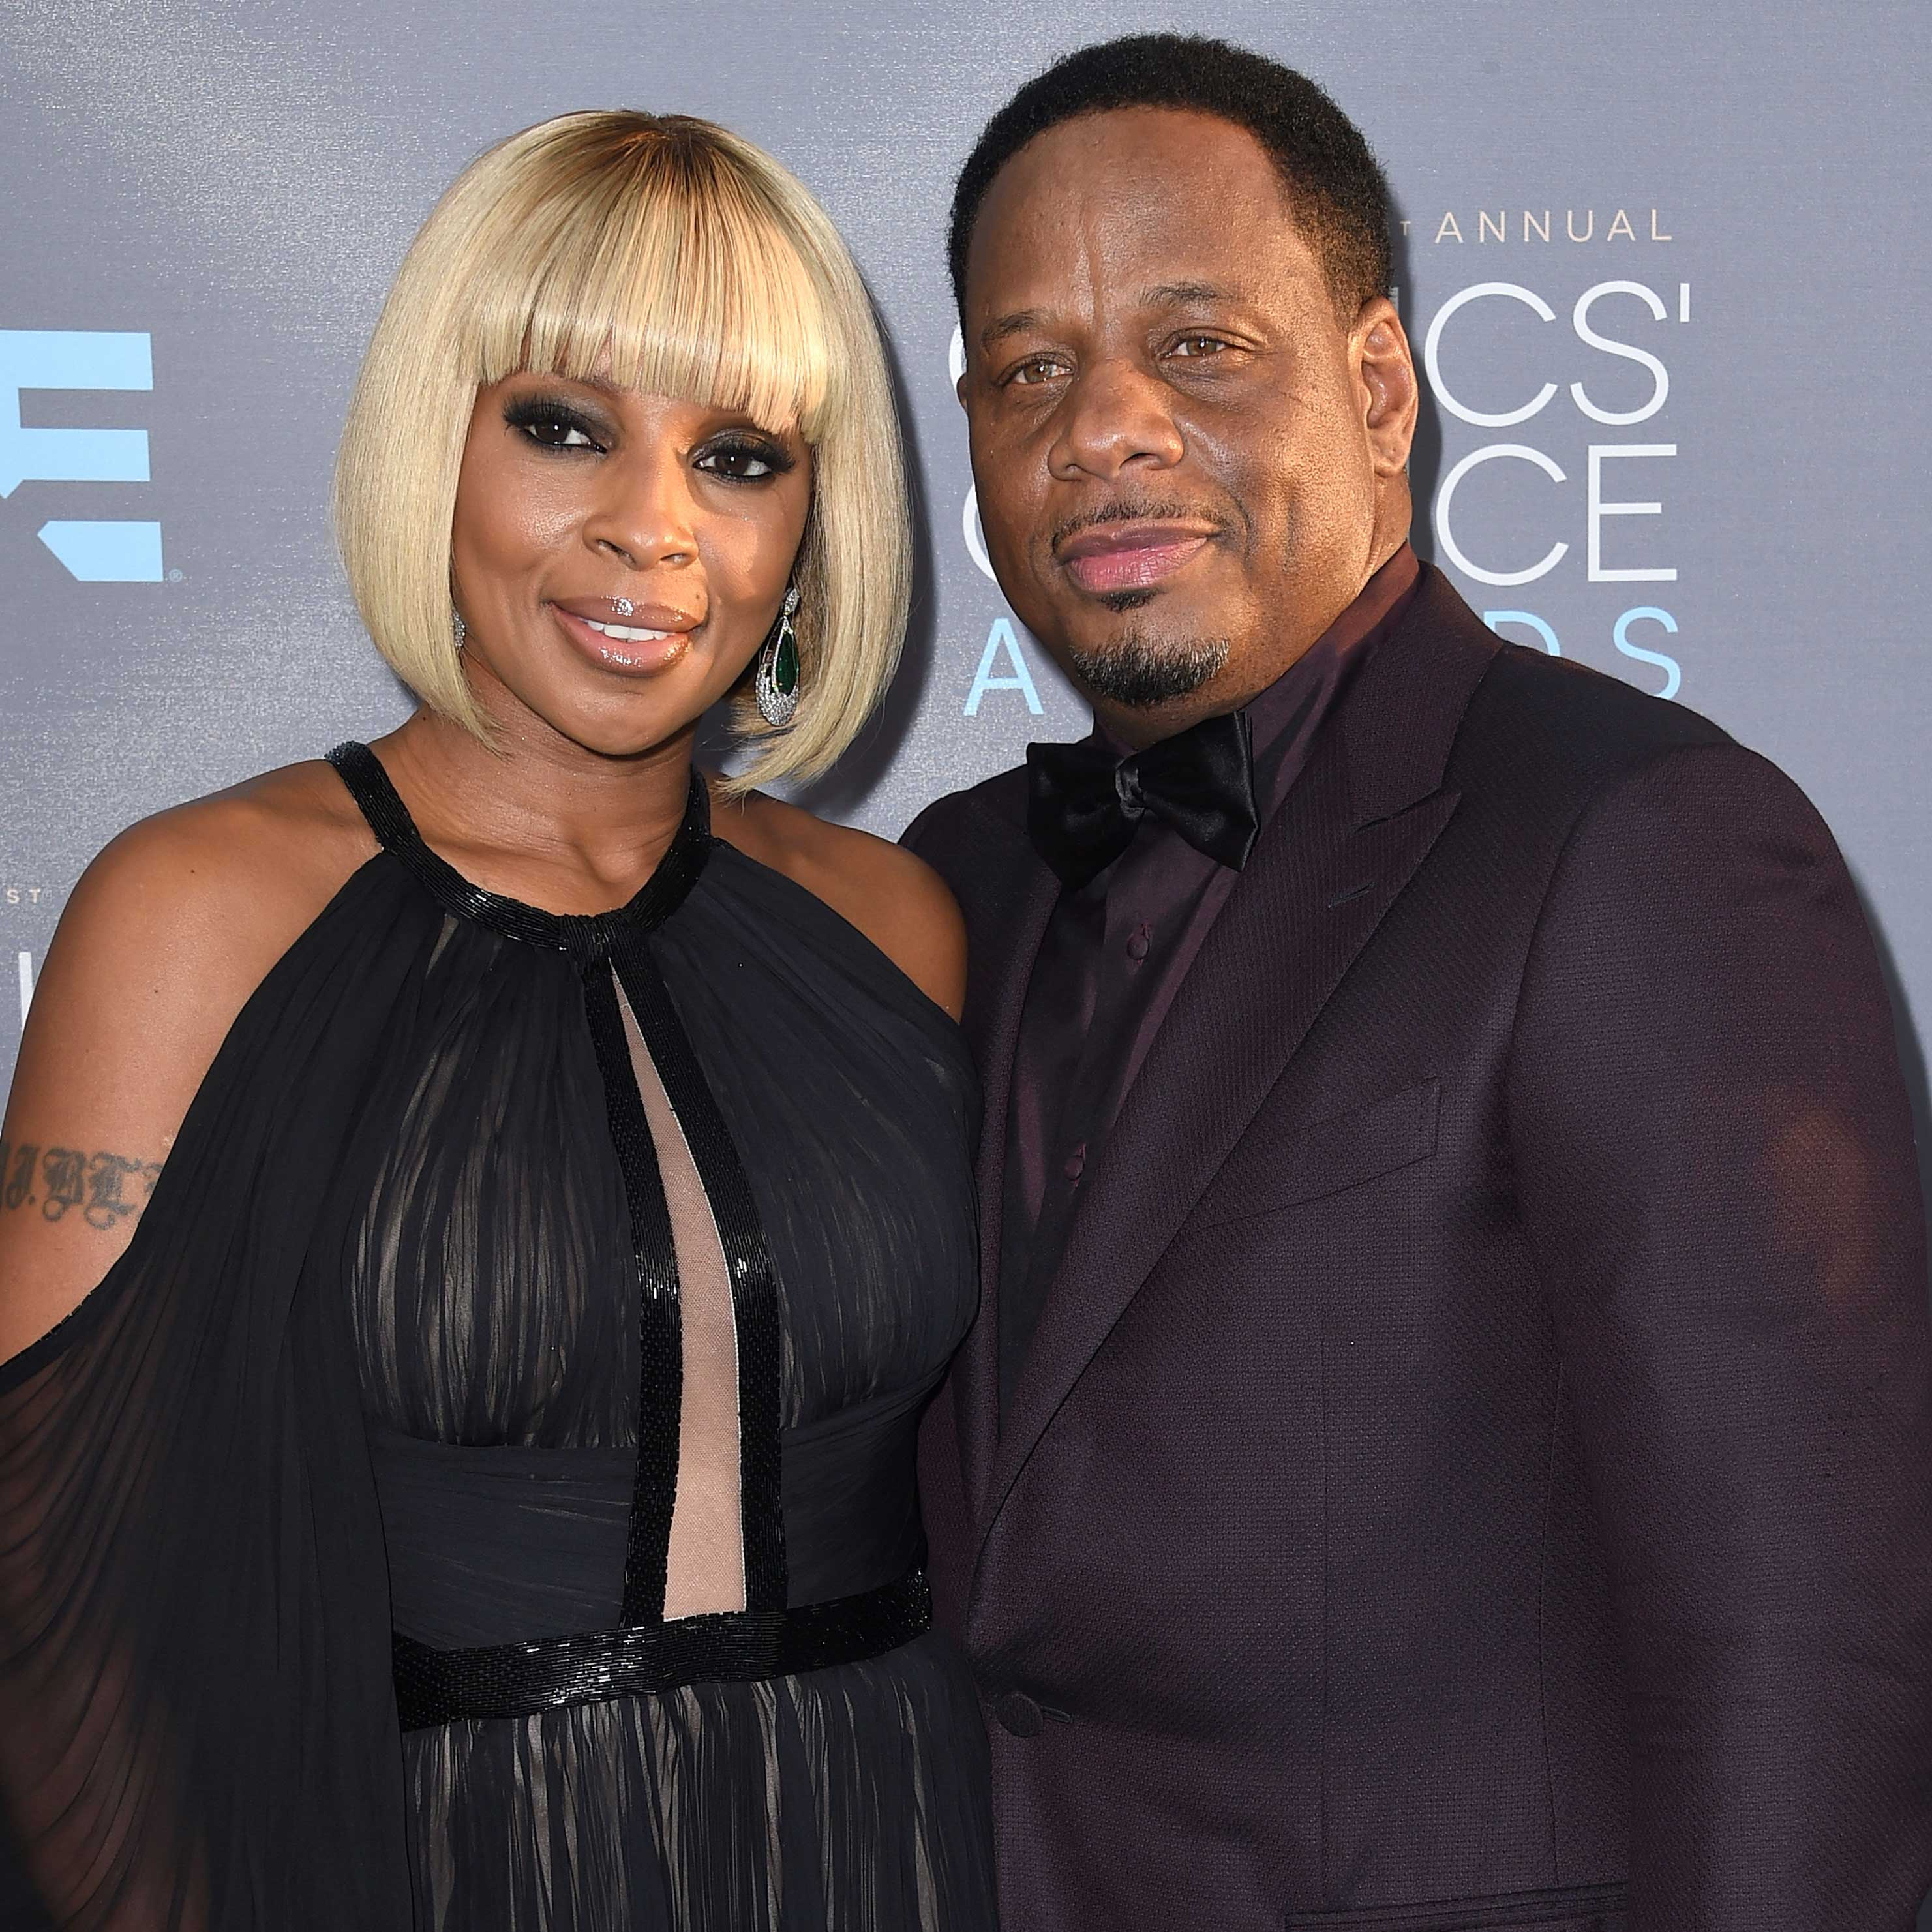 Mary J. Blige Reportedly Files for Divorce from Husband Kendu Isaacs